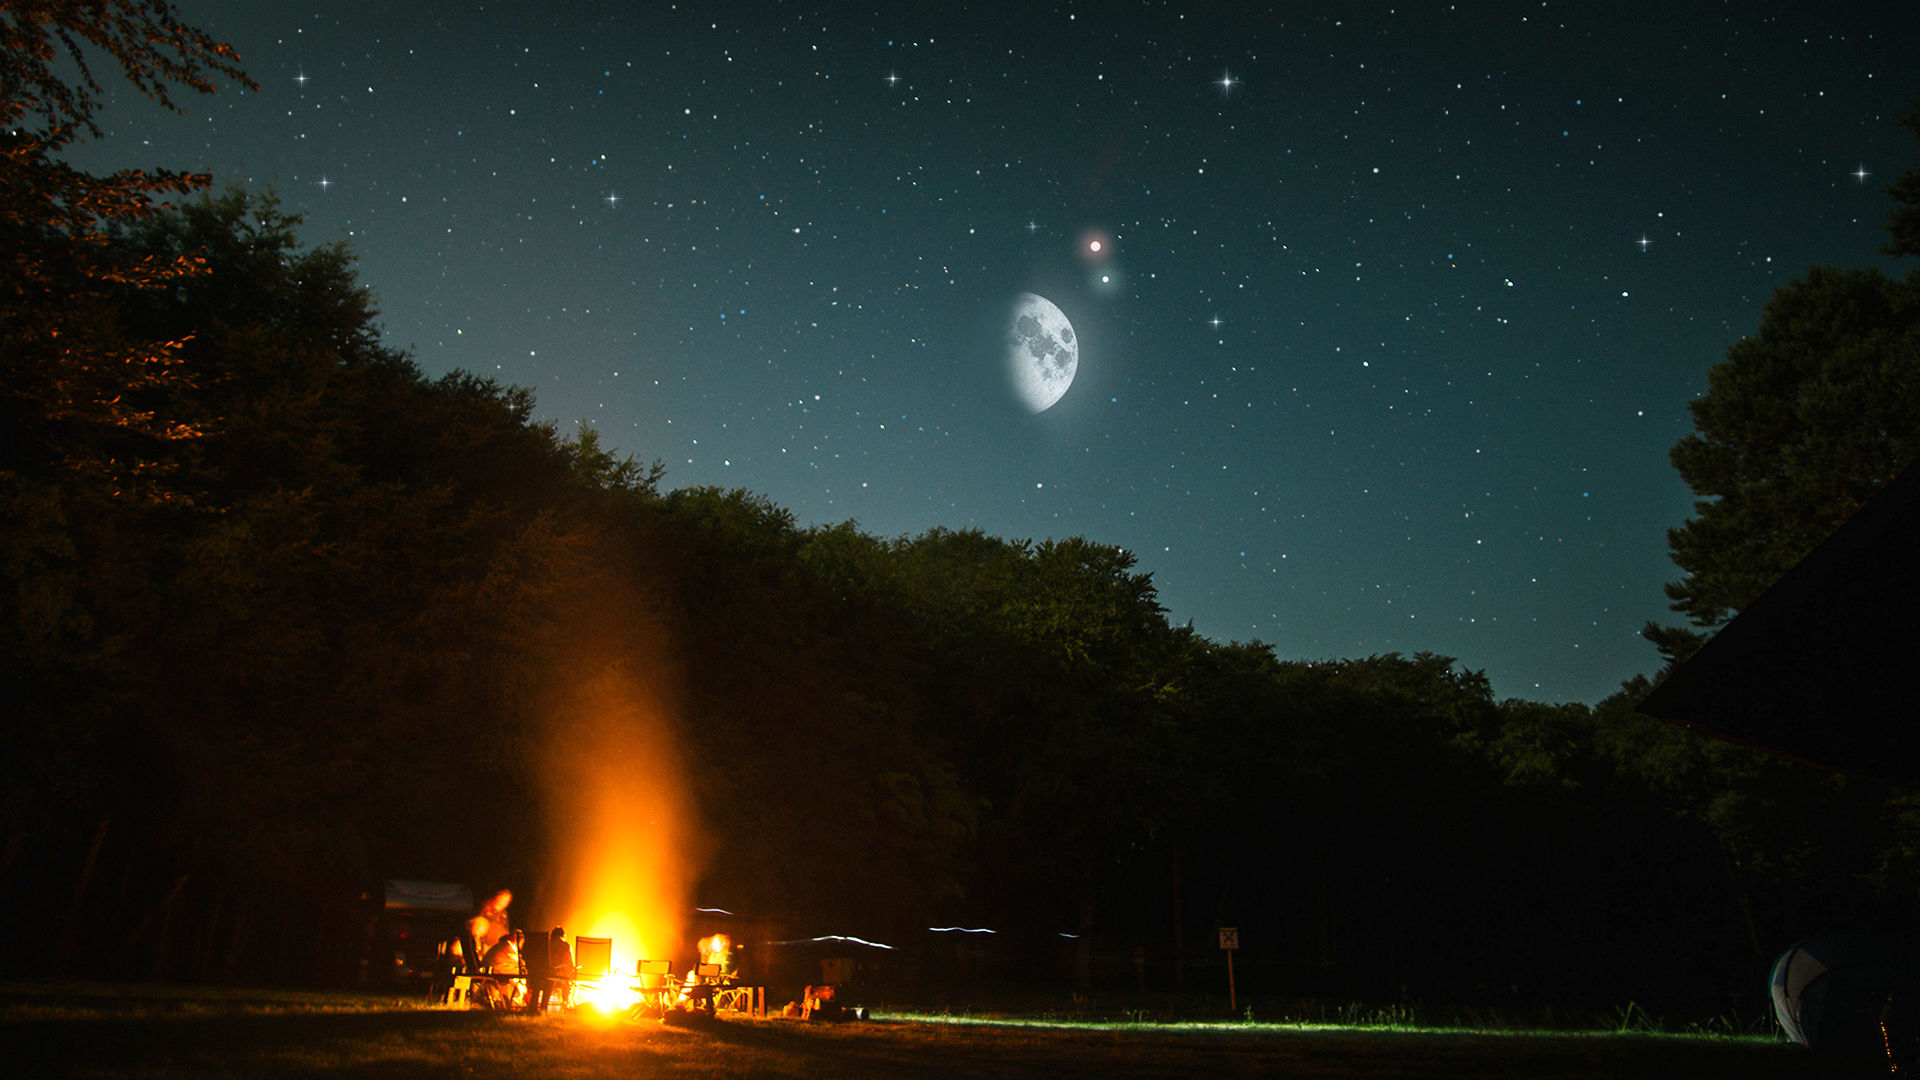 The Moon, Mars, and Uranus Gather in the Evening Sky